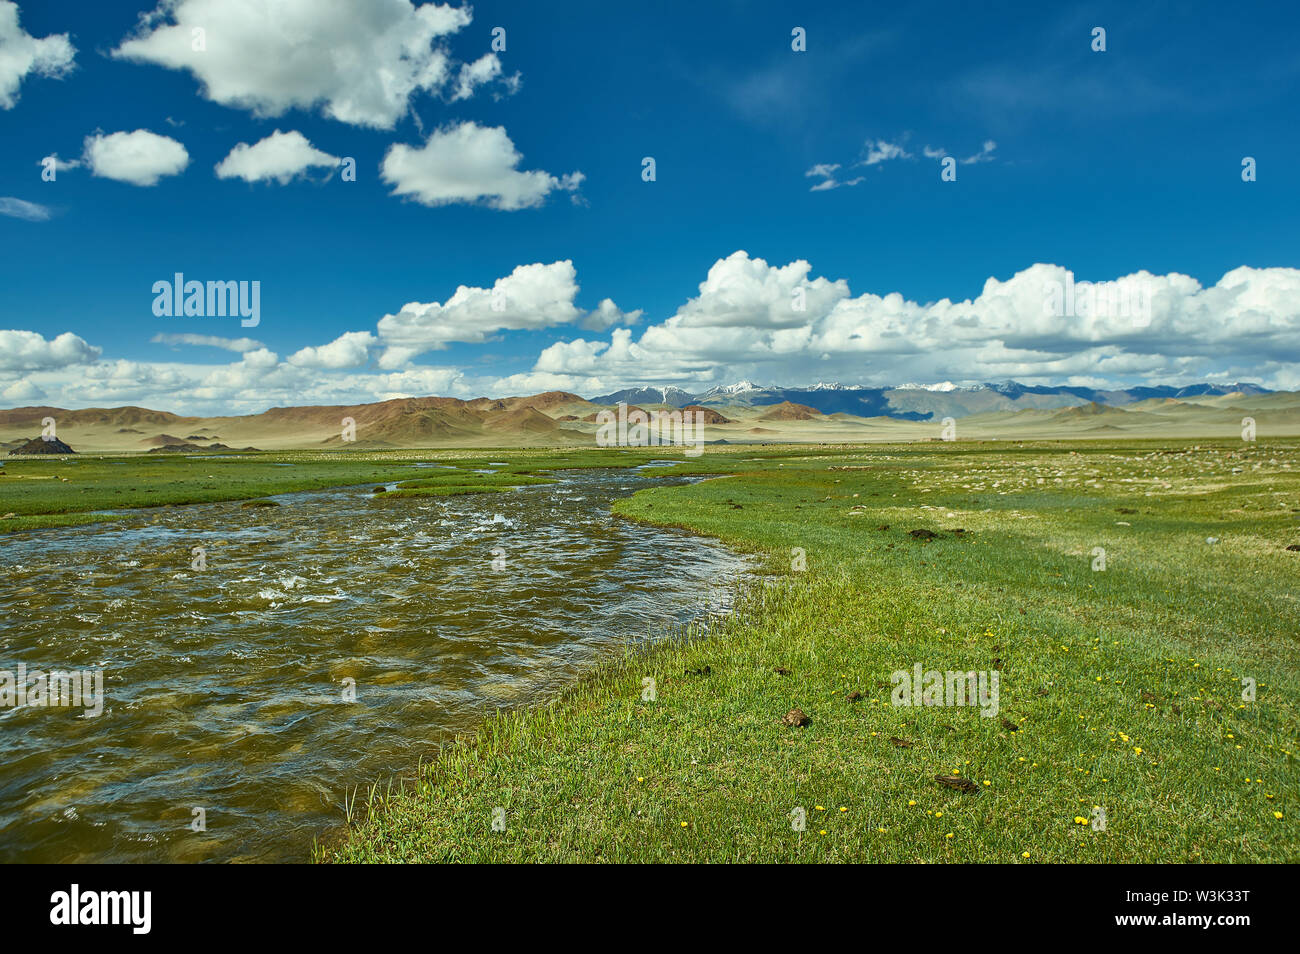 Mongolian Altai.  Current mountain stream, Scenic valley on the background of the snowcapped mountains. - Stock Image